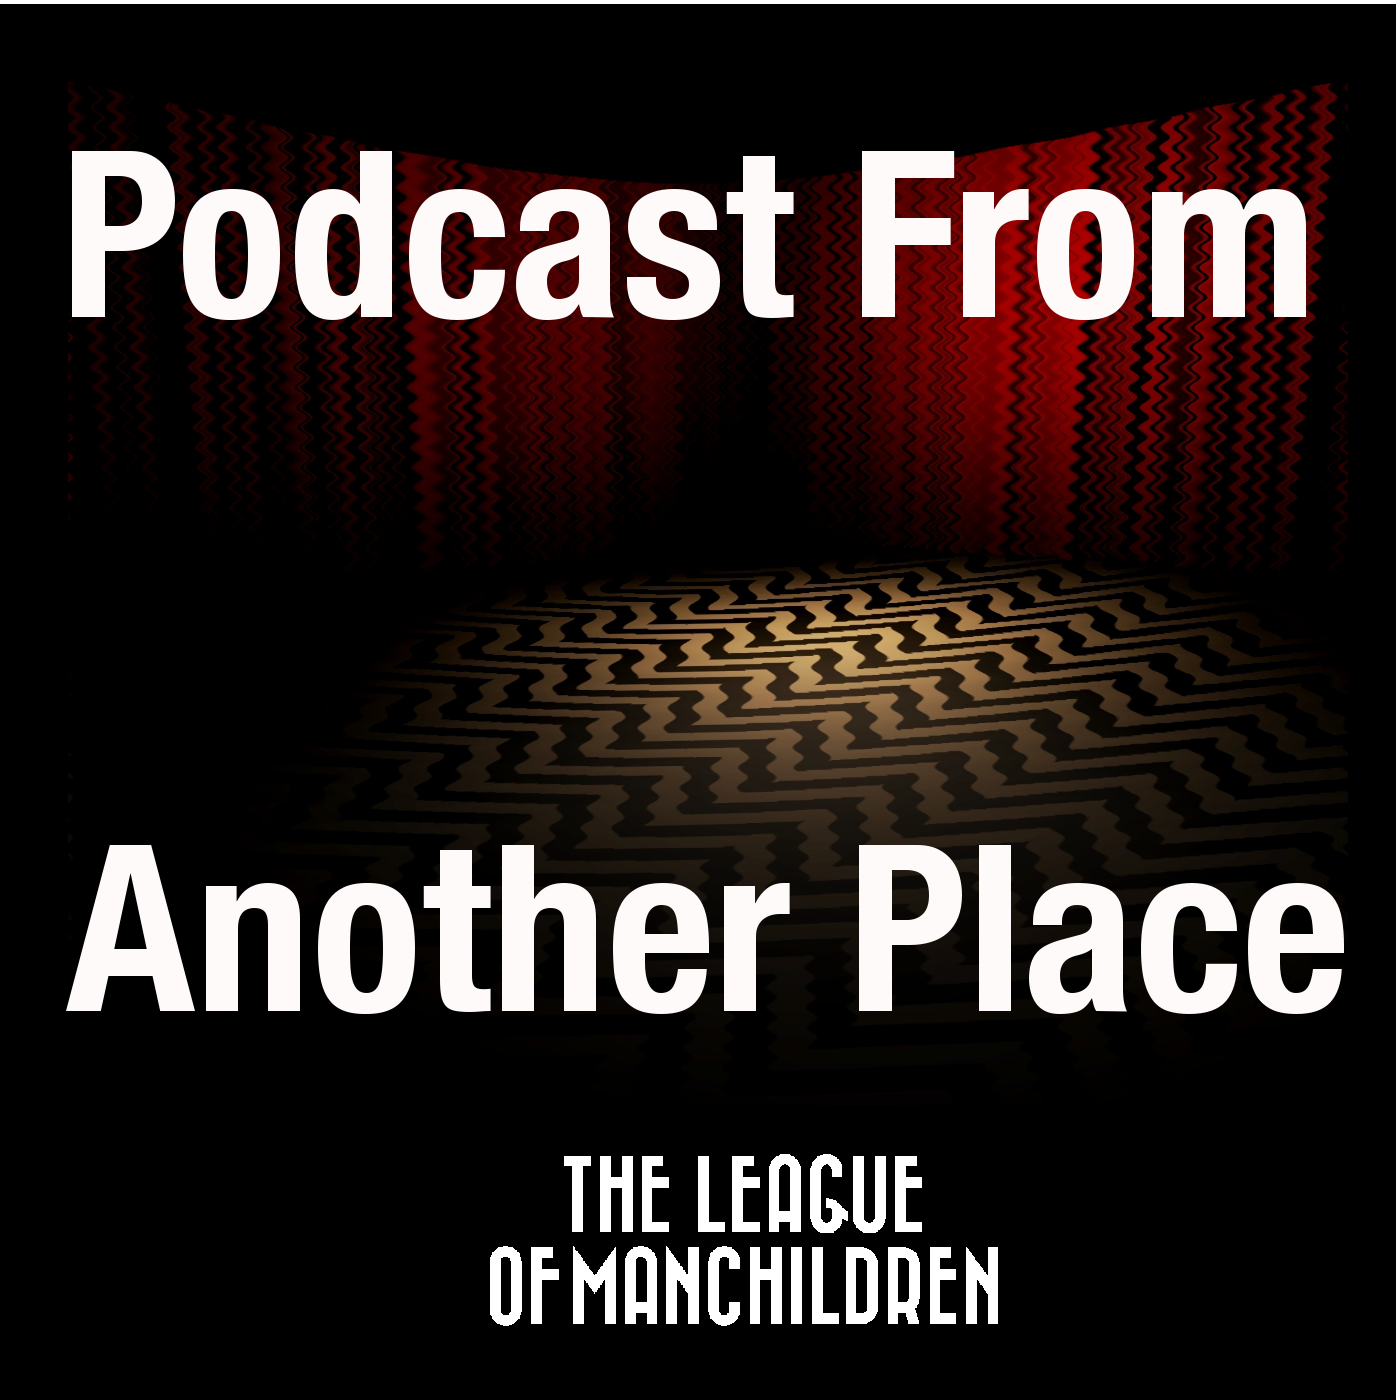 Podcast From Another Place #11 - Coma show art